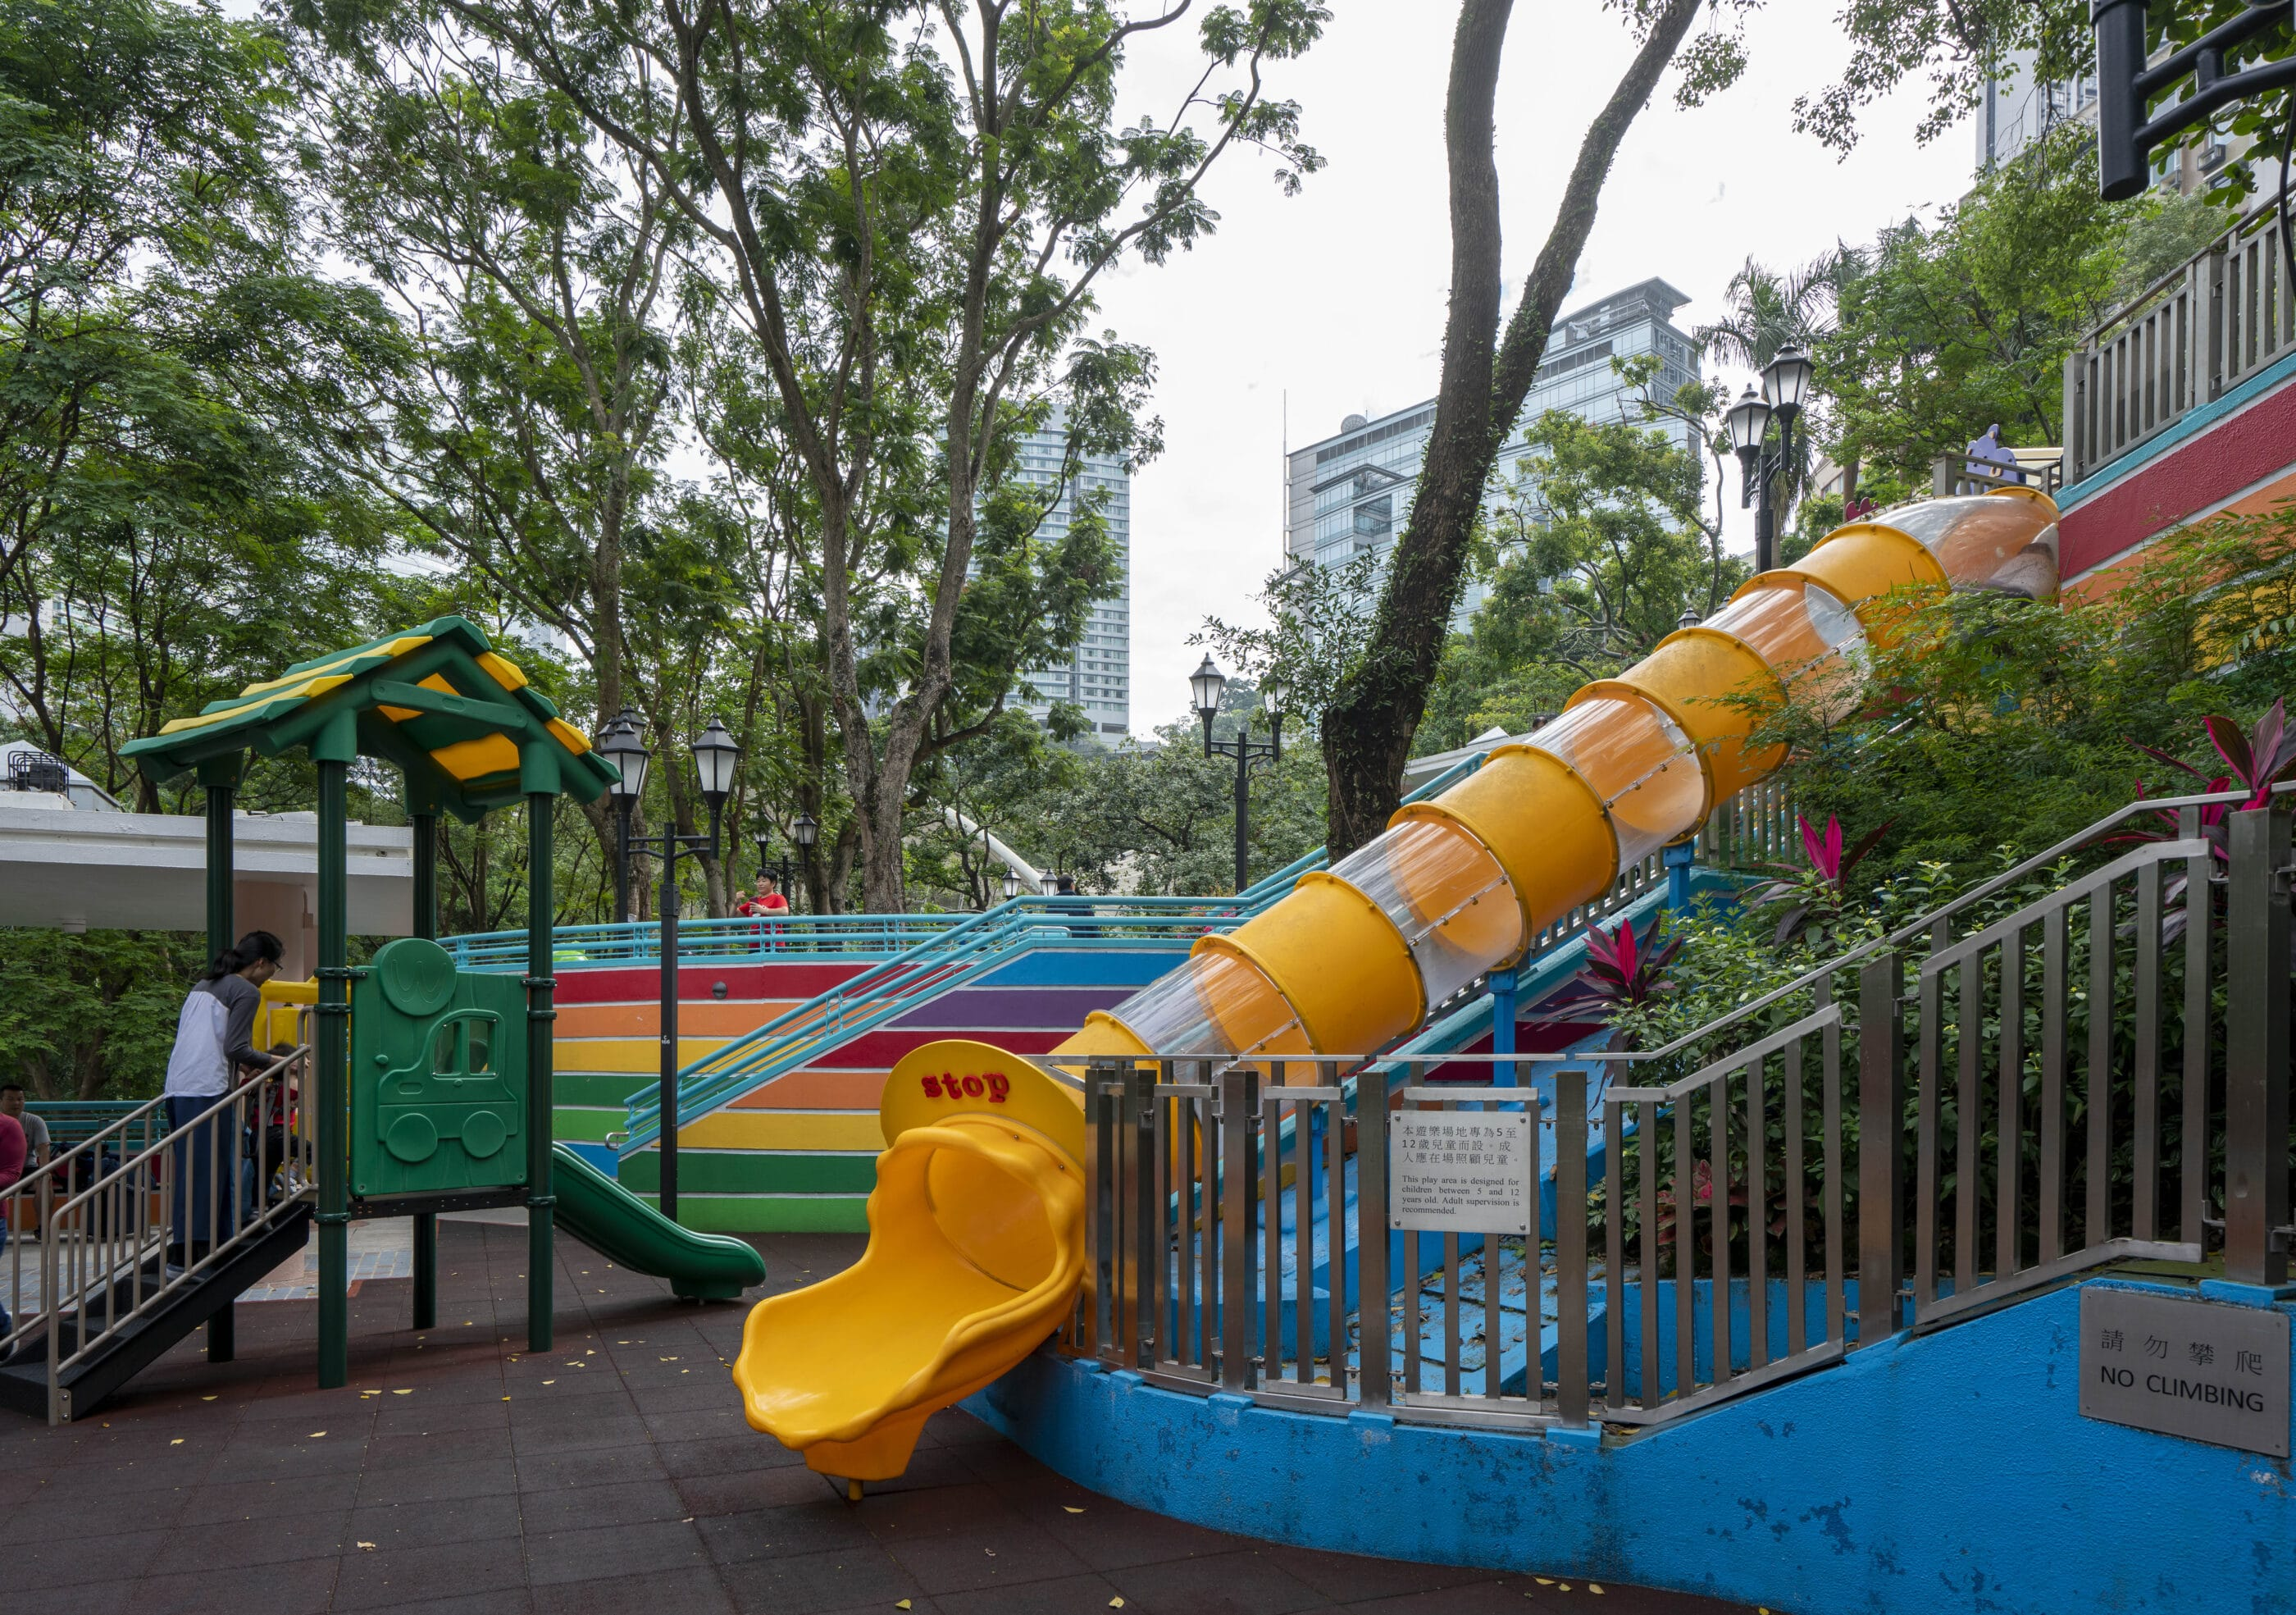 A large tunnel slide and part of the colorful play structure at the Hong Kong Park playground.